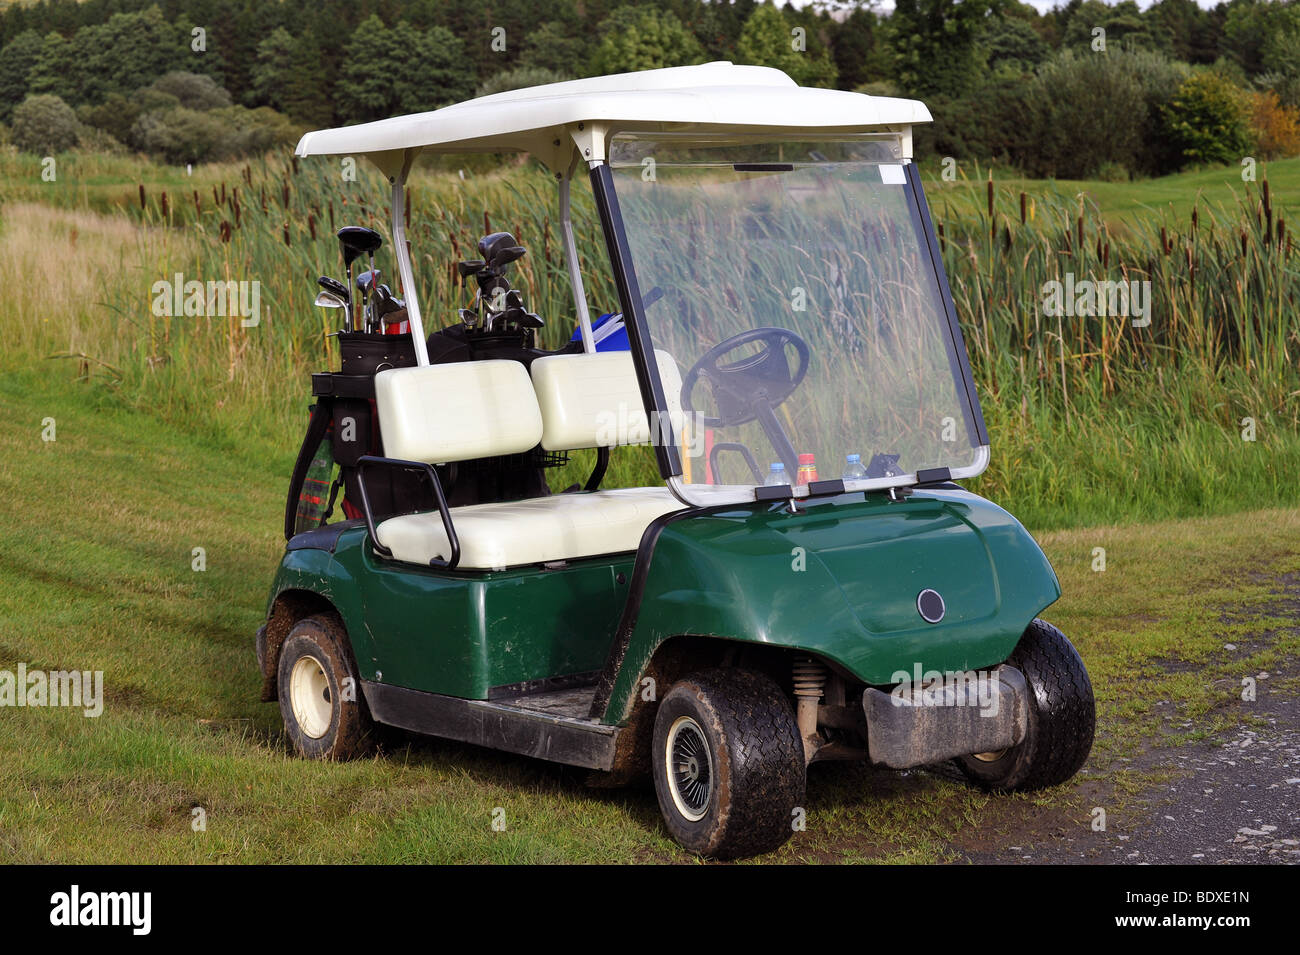 Small buggy for playing on a golf course. - Stock Image